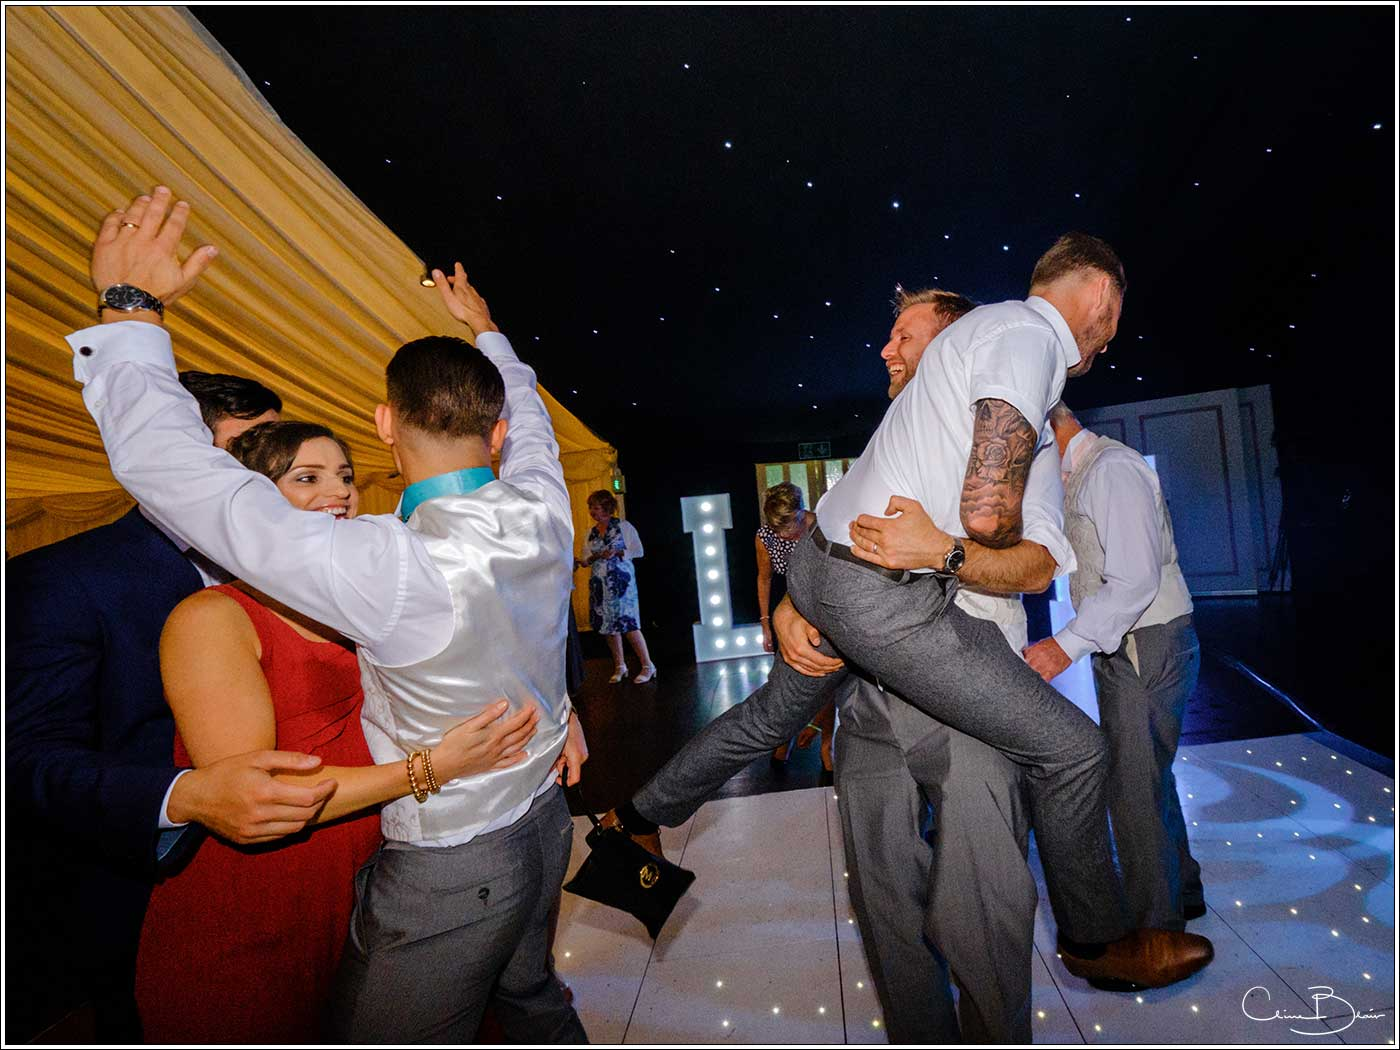 Coombe Abbey wedding photography showing wild antics on the dance floor